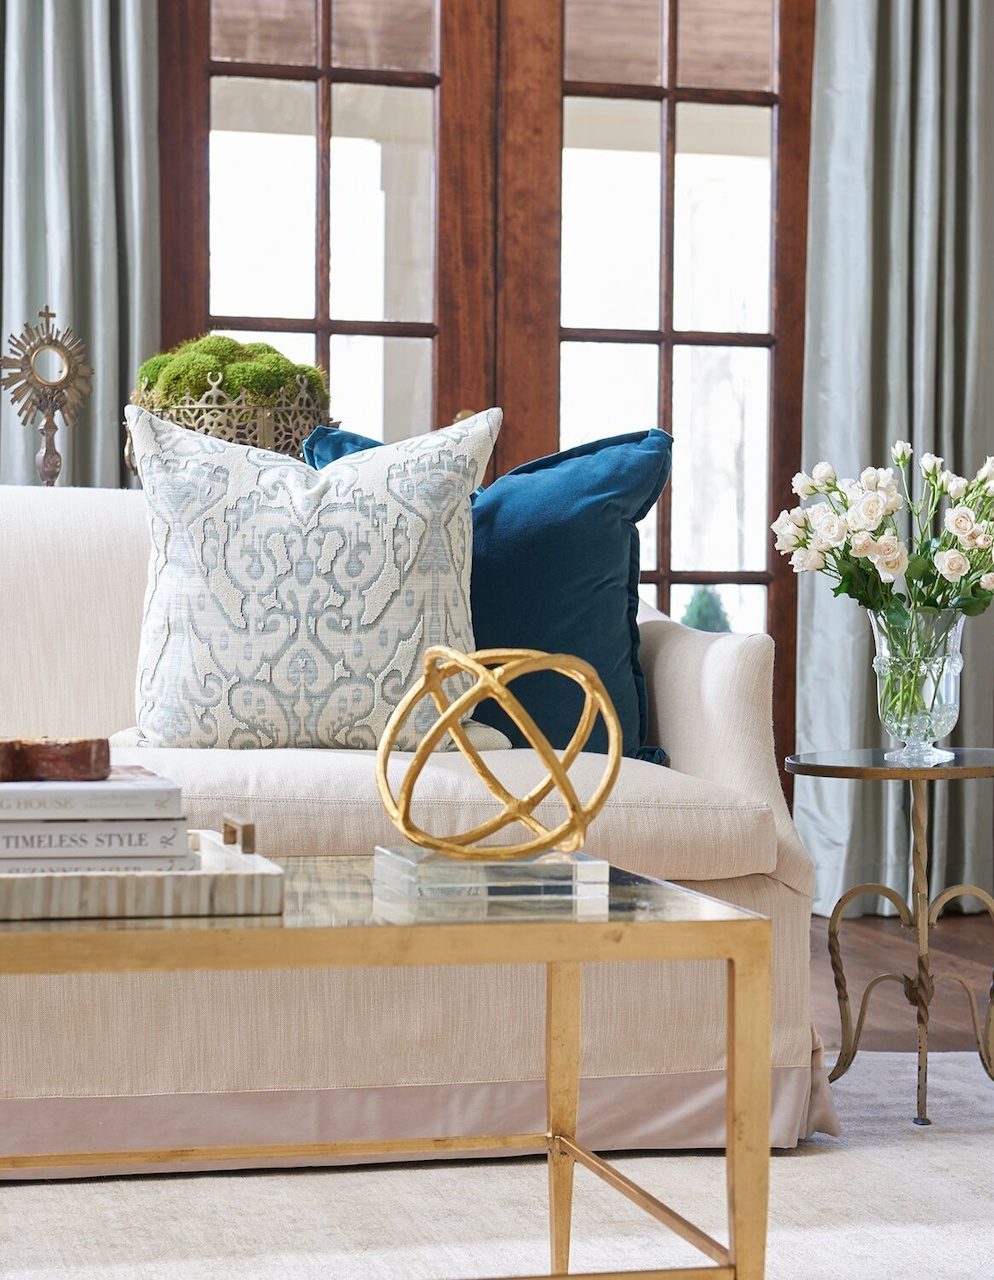 A linen sofa from Lee Industries has a timeless silhouette; the designer can change out pillows to give the room a new look.